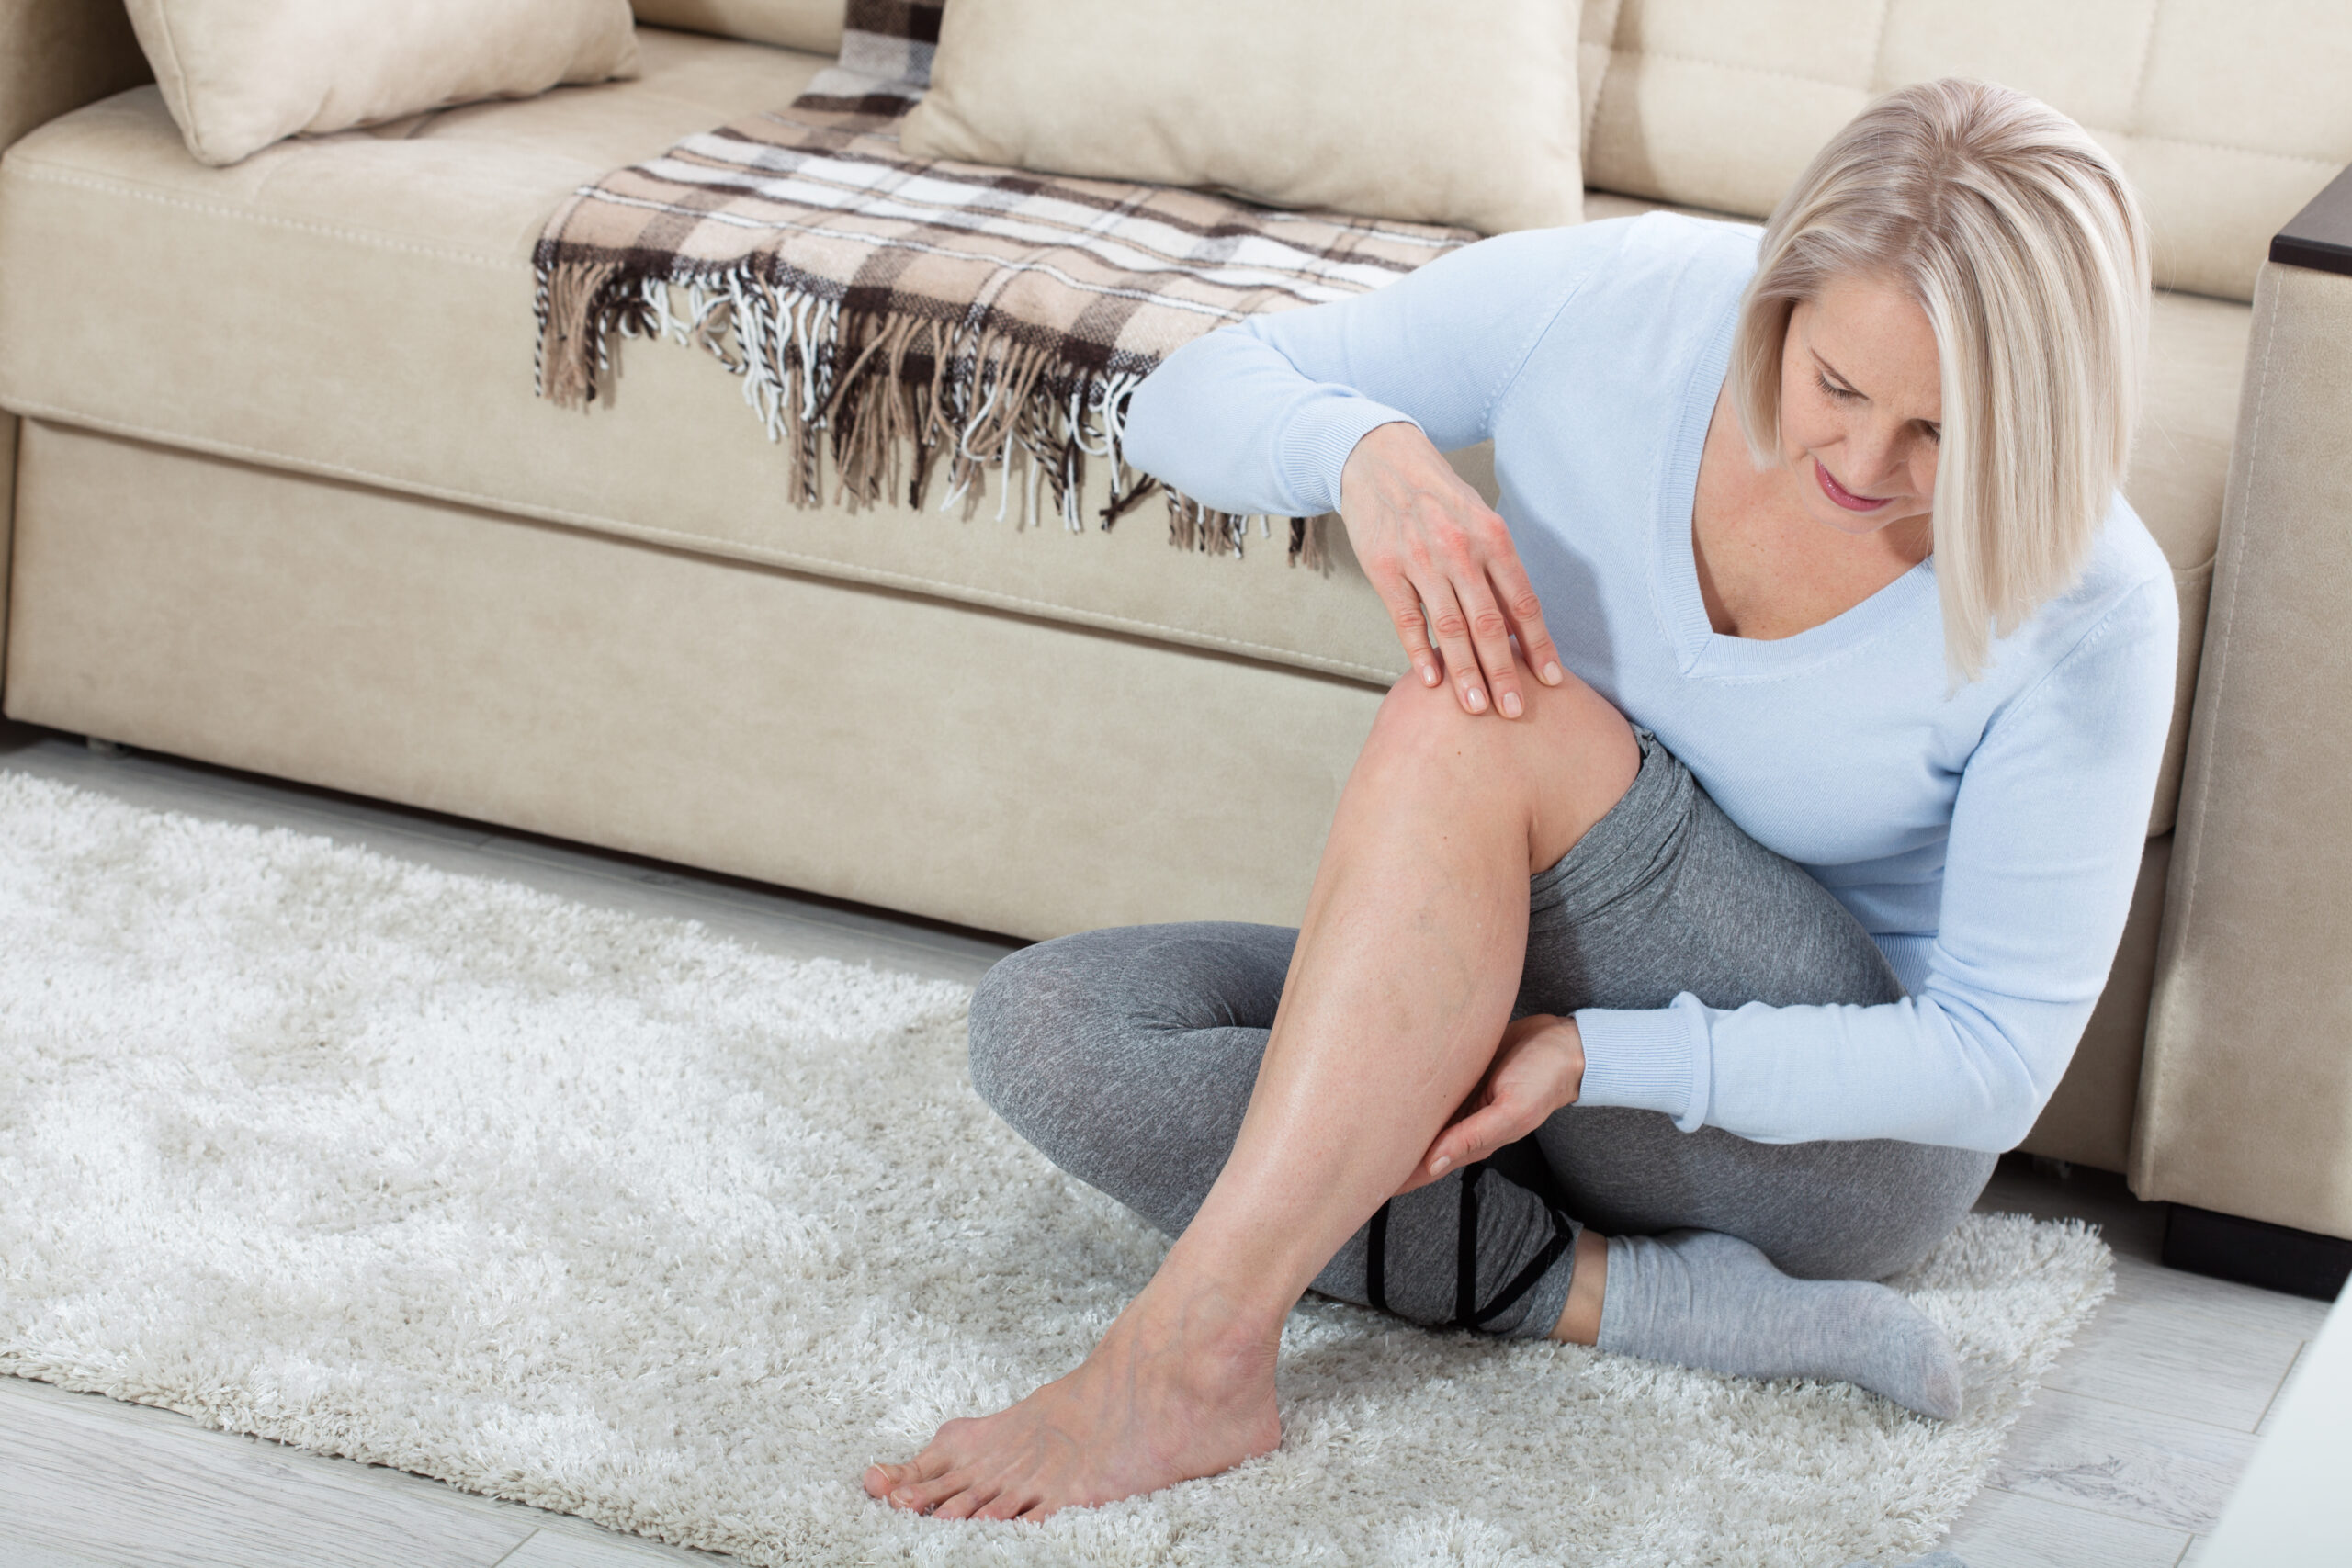 Middle-aged,Woman,Suffering,From,Pain,In,Leg,At,Home,,Closeup.